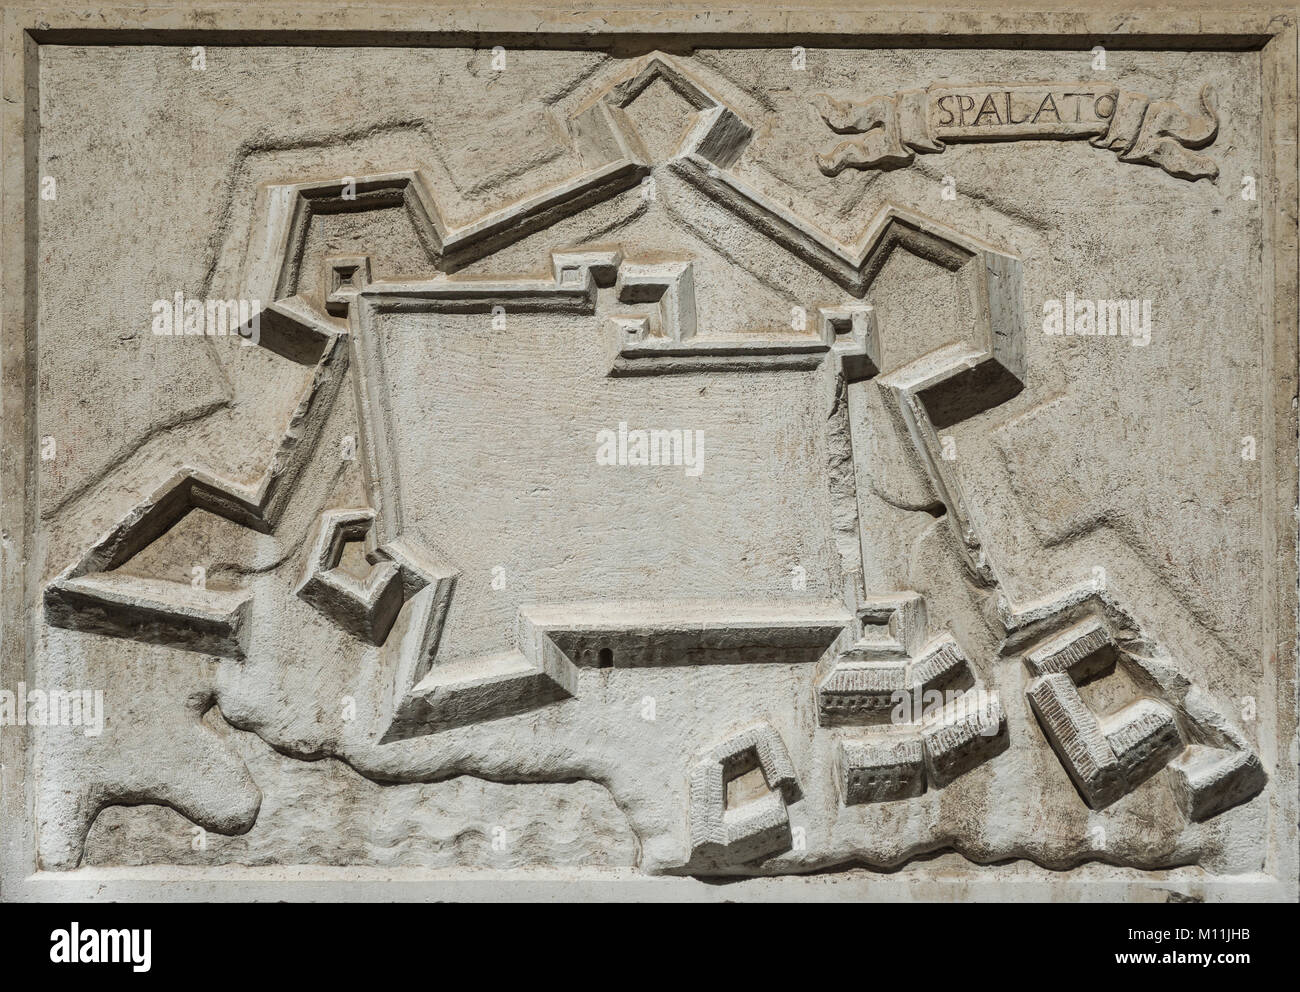 Ancient map of Split city in Croatia, an old venetian fortress on Adriatic Sea, from a stone relief on Santa Maria - Stock Image